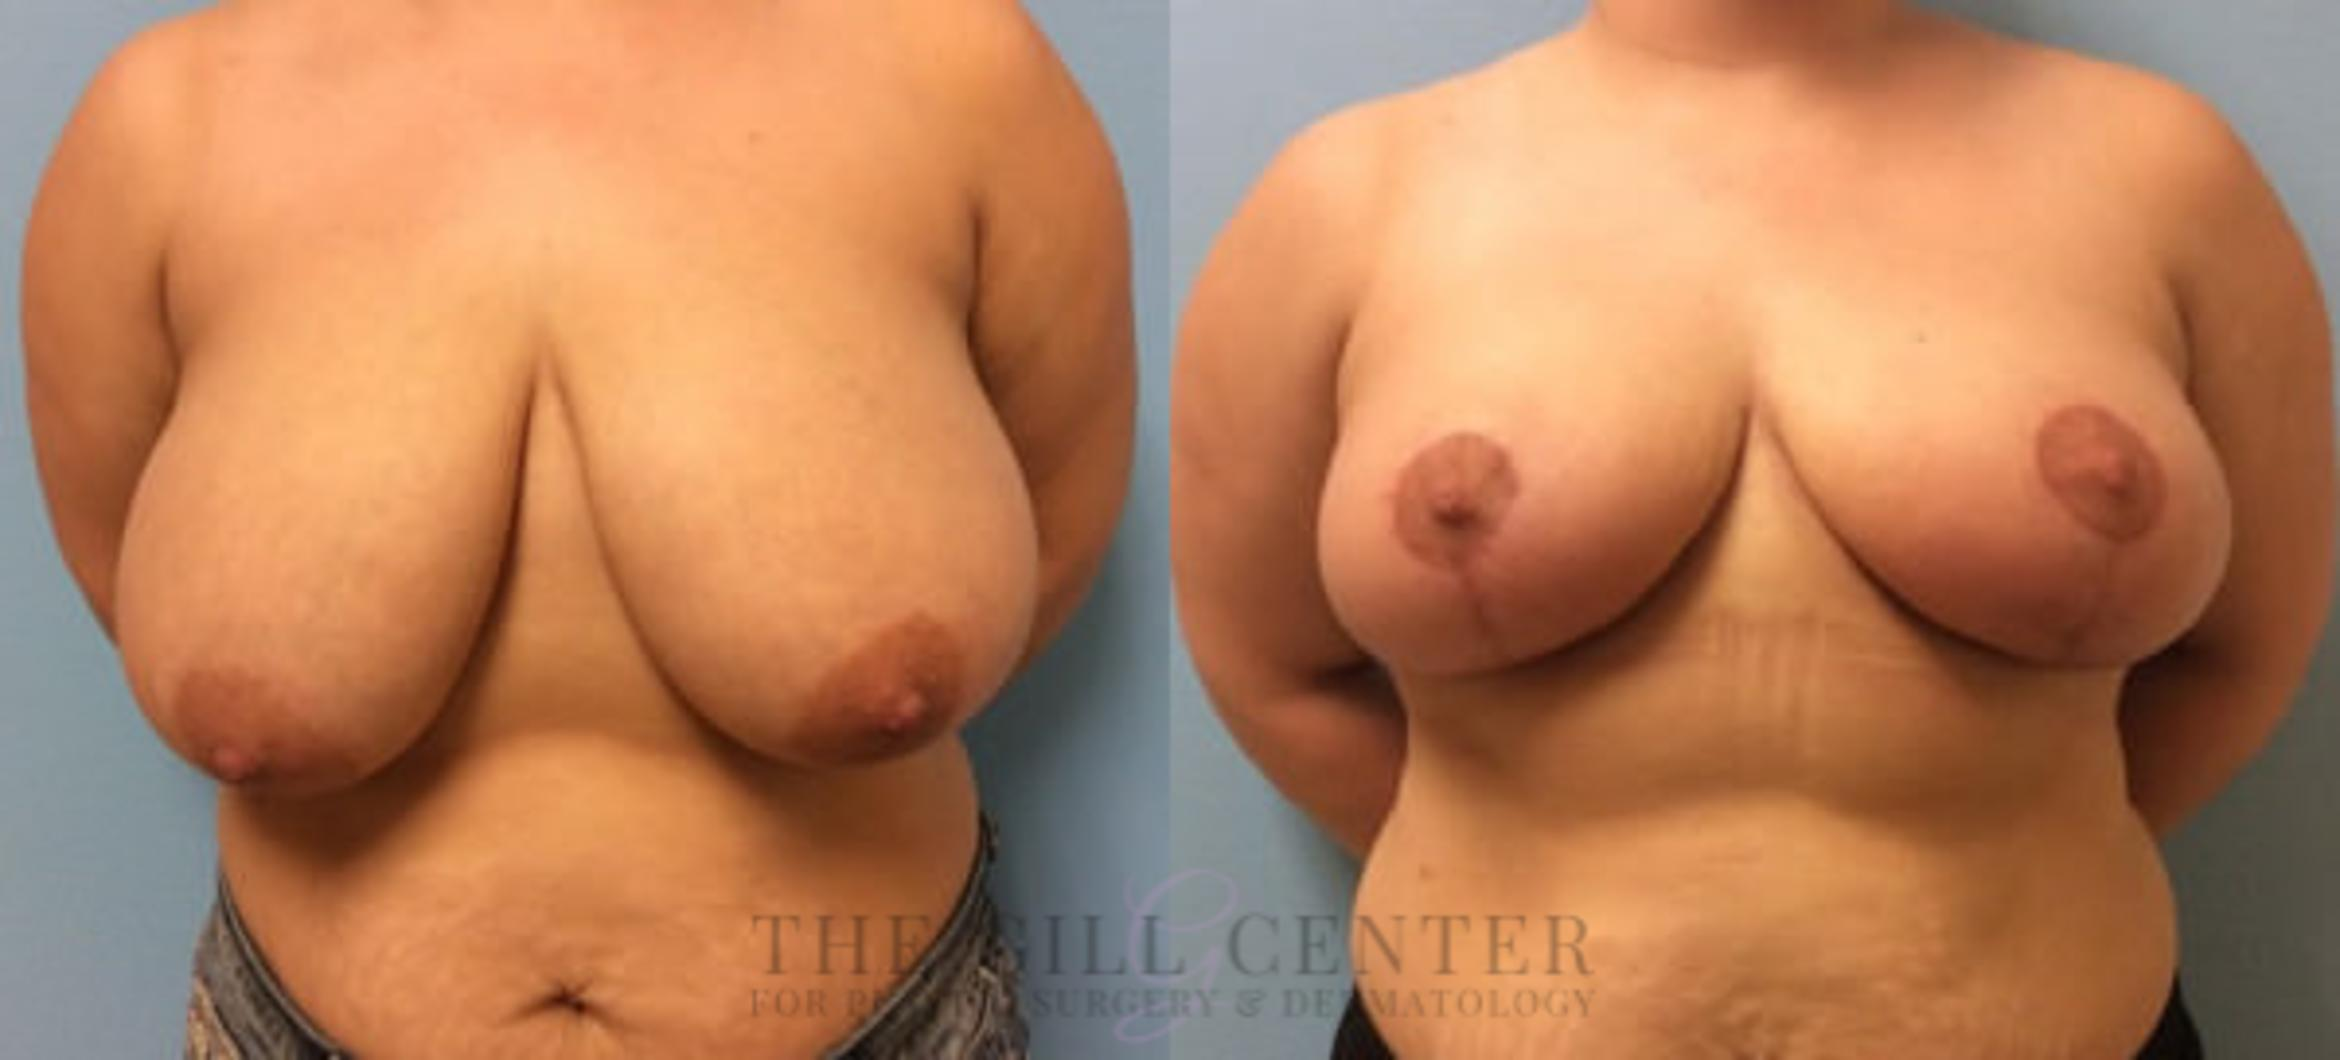 Breast Reduction Case 126 Before & After Front | The Woodlands, TX | The Gill Center for Plastic Surgery and Dermatology